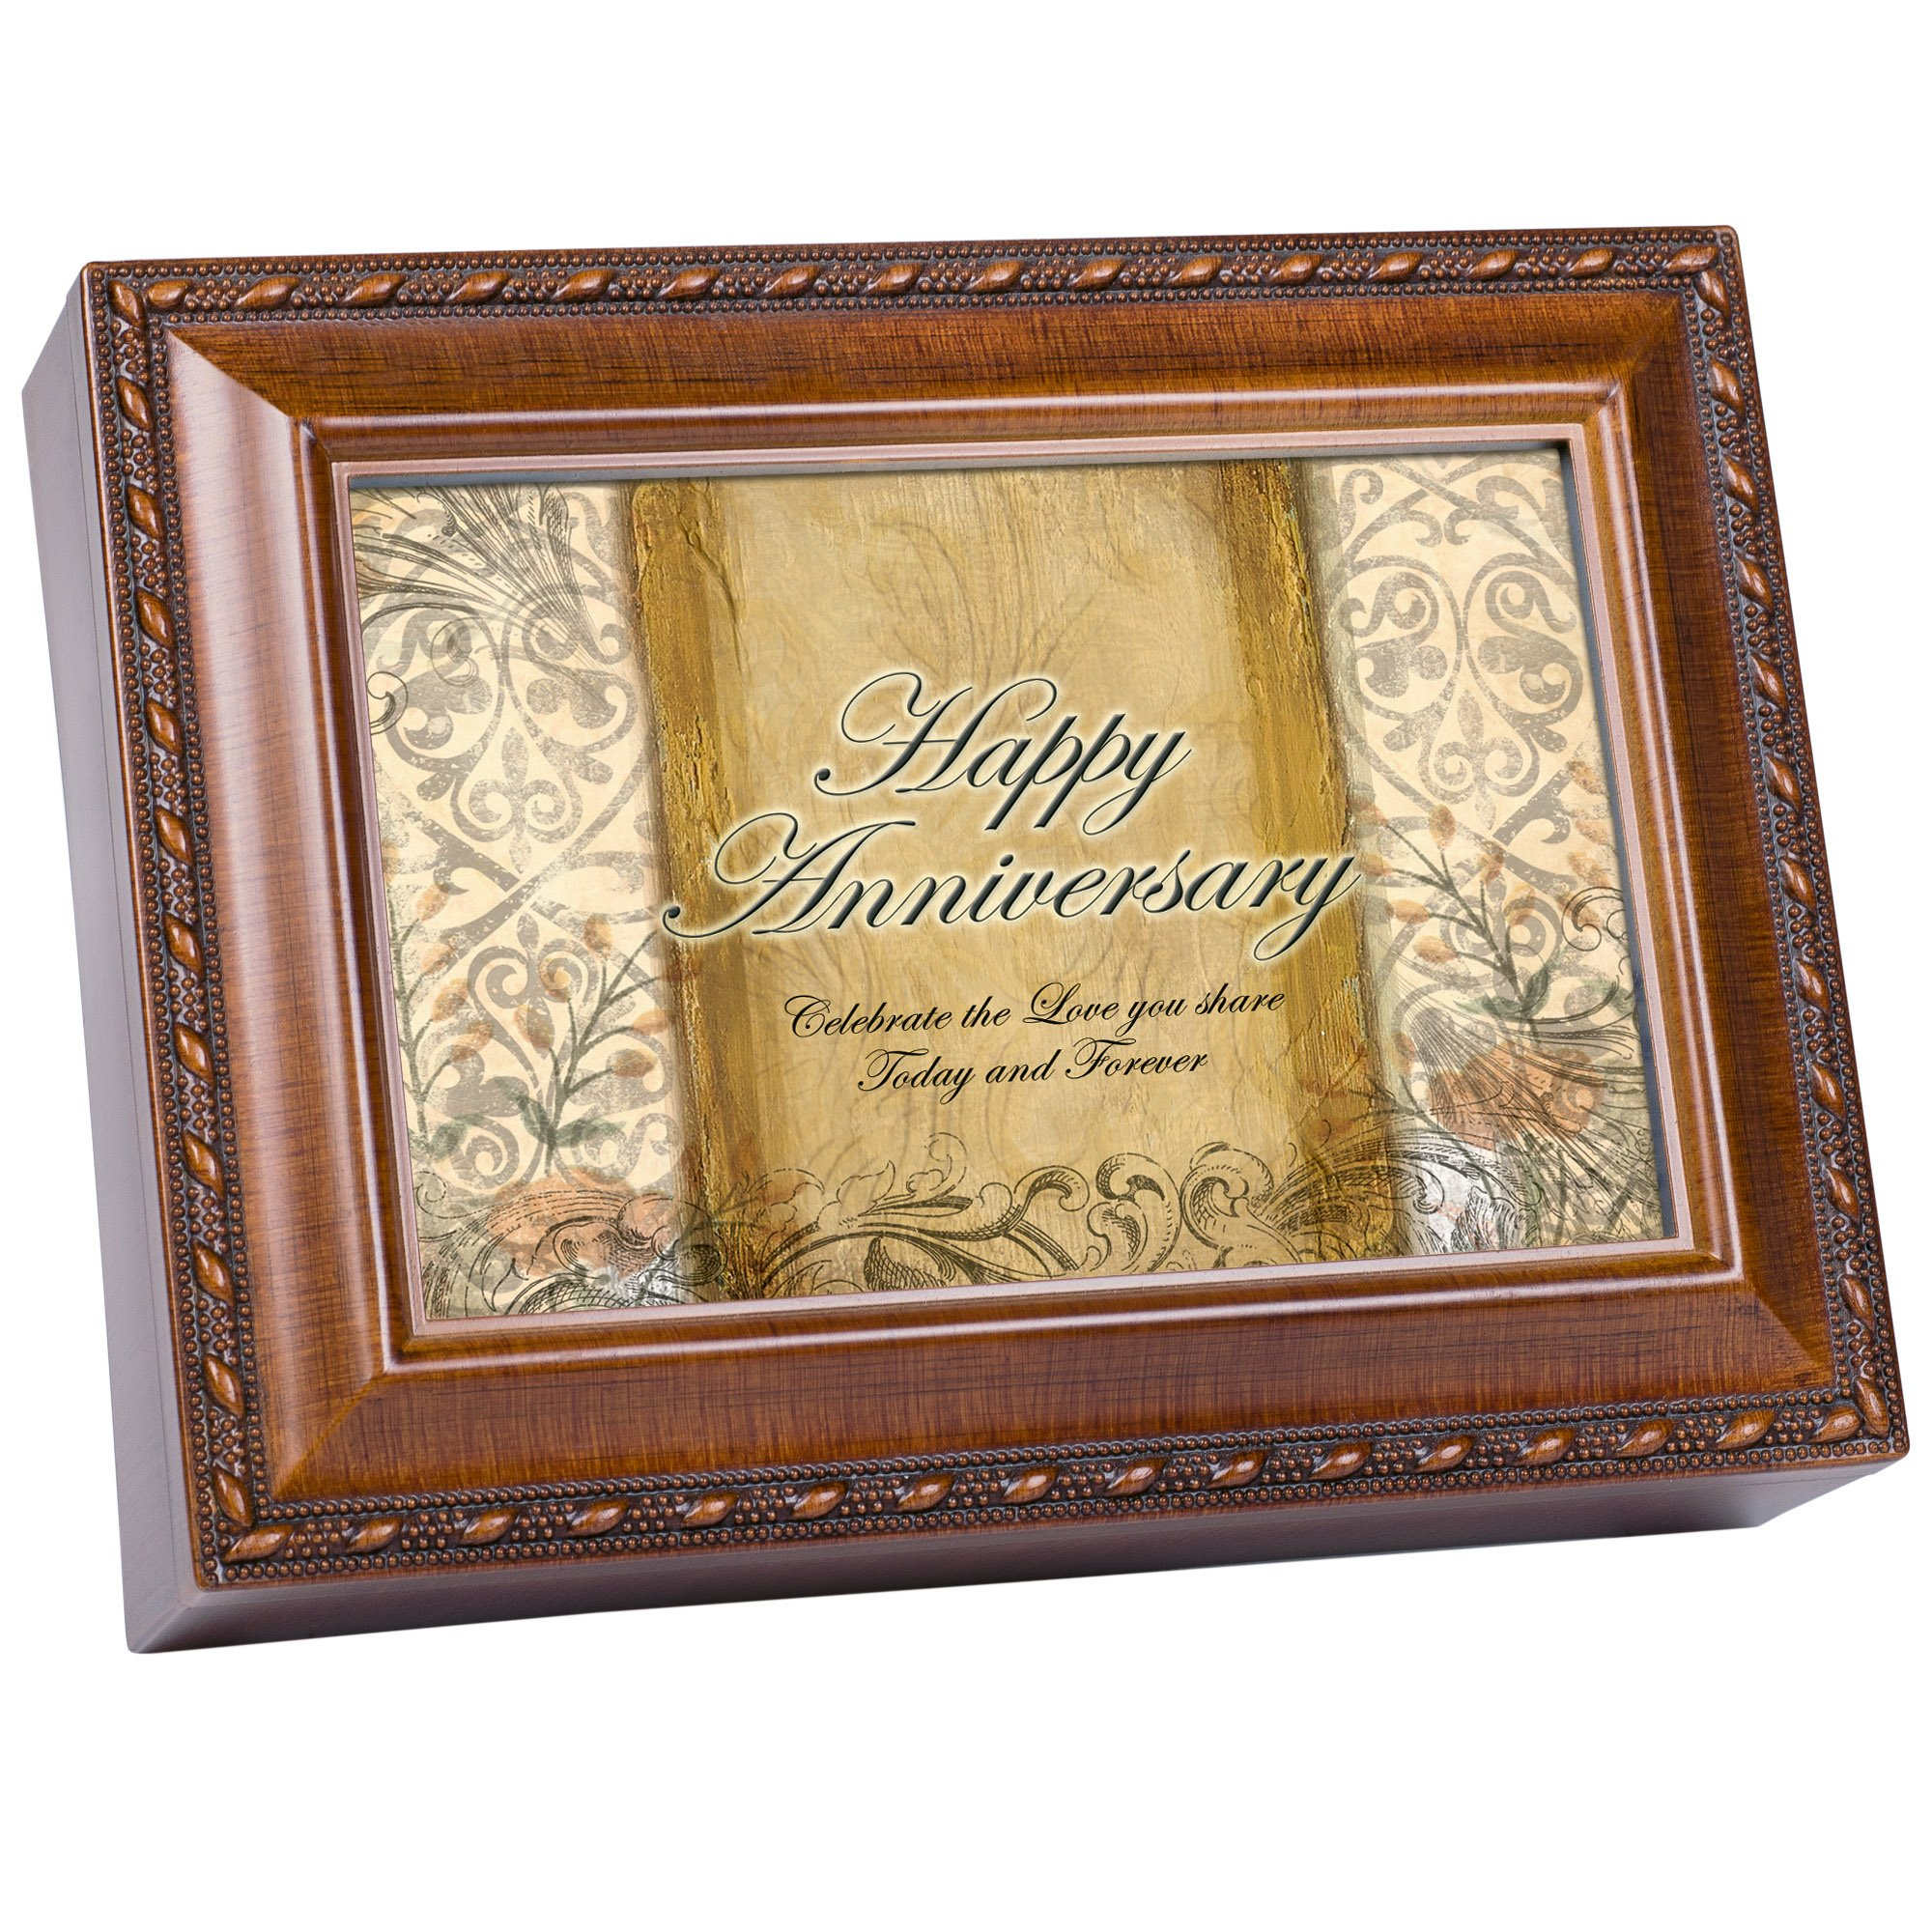 Cottage Garden Happy Anniversary Woodgrain Rope Trim Music Box Plays Unchained Melody